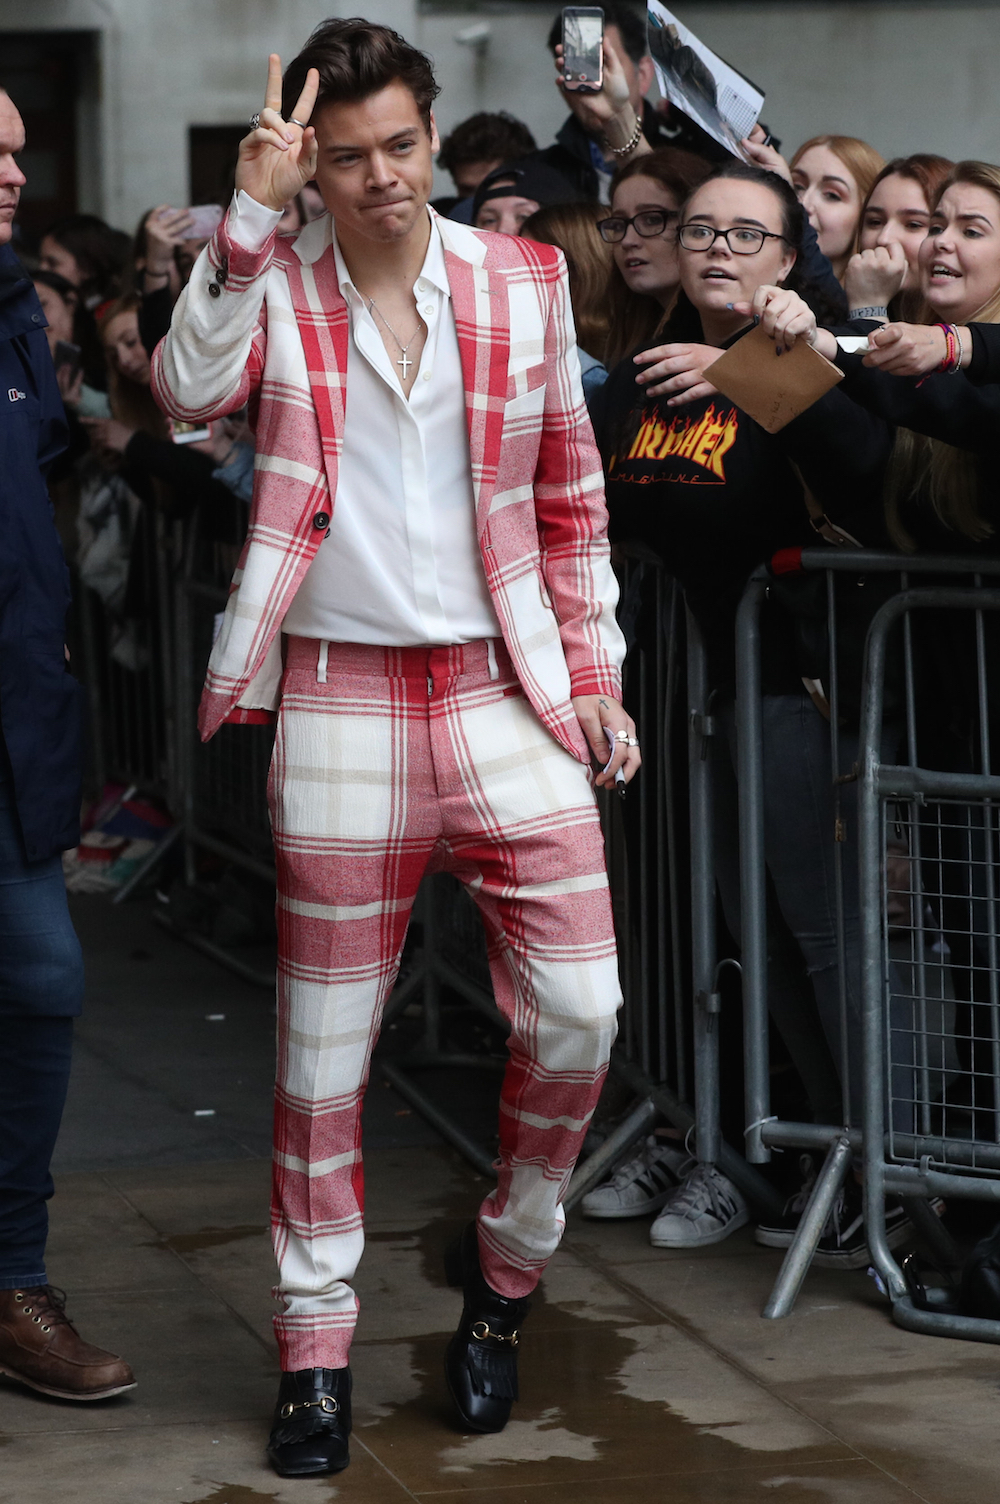 Co-chair Harry Styles isn't afraid of a jazzy suit